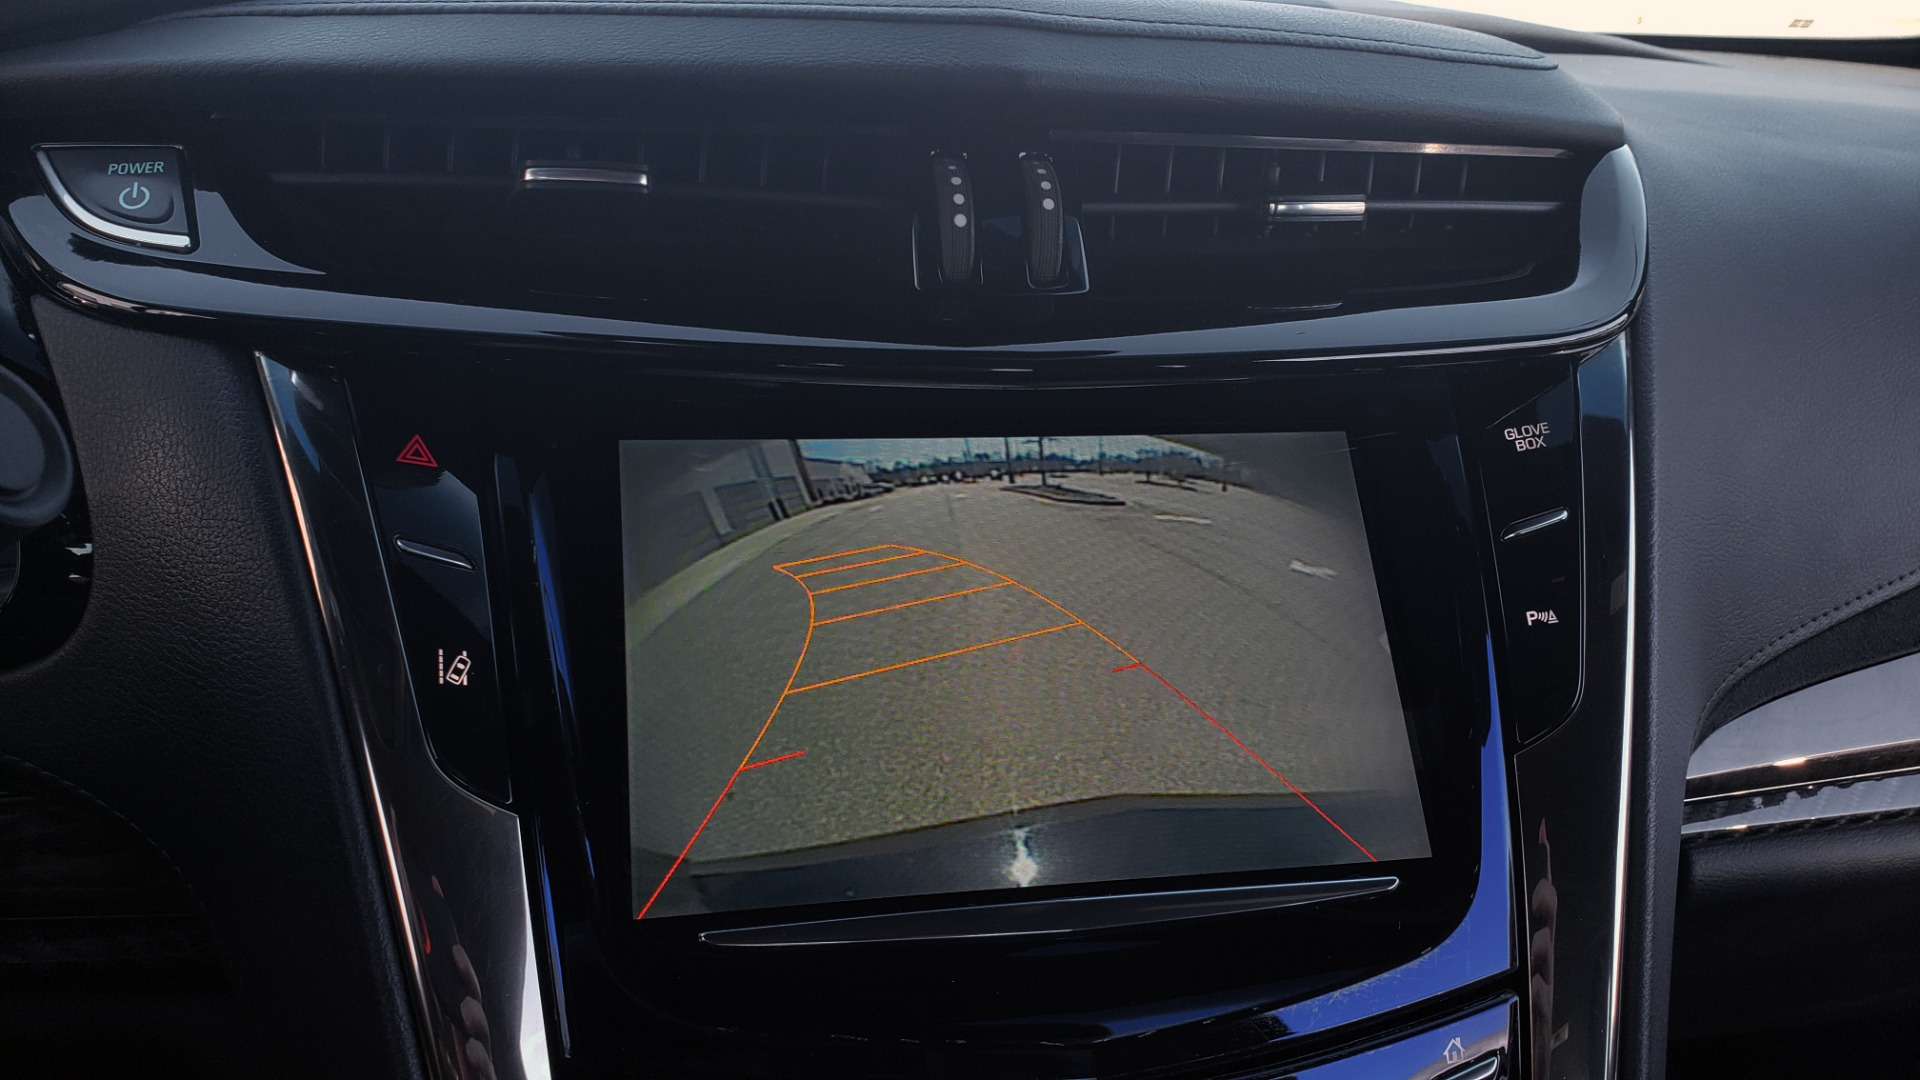 Used 2014 Cadillac ELR 2DR COUPE / HYBRID / NAV / BOSE / HEATED SEATS / REARVIEW for sale $19,995 at Formula Imports in Charlotte NC 28227 49